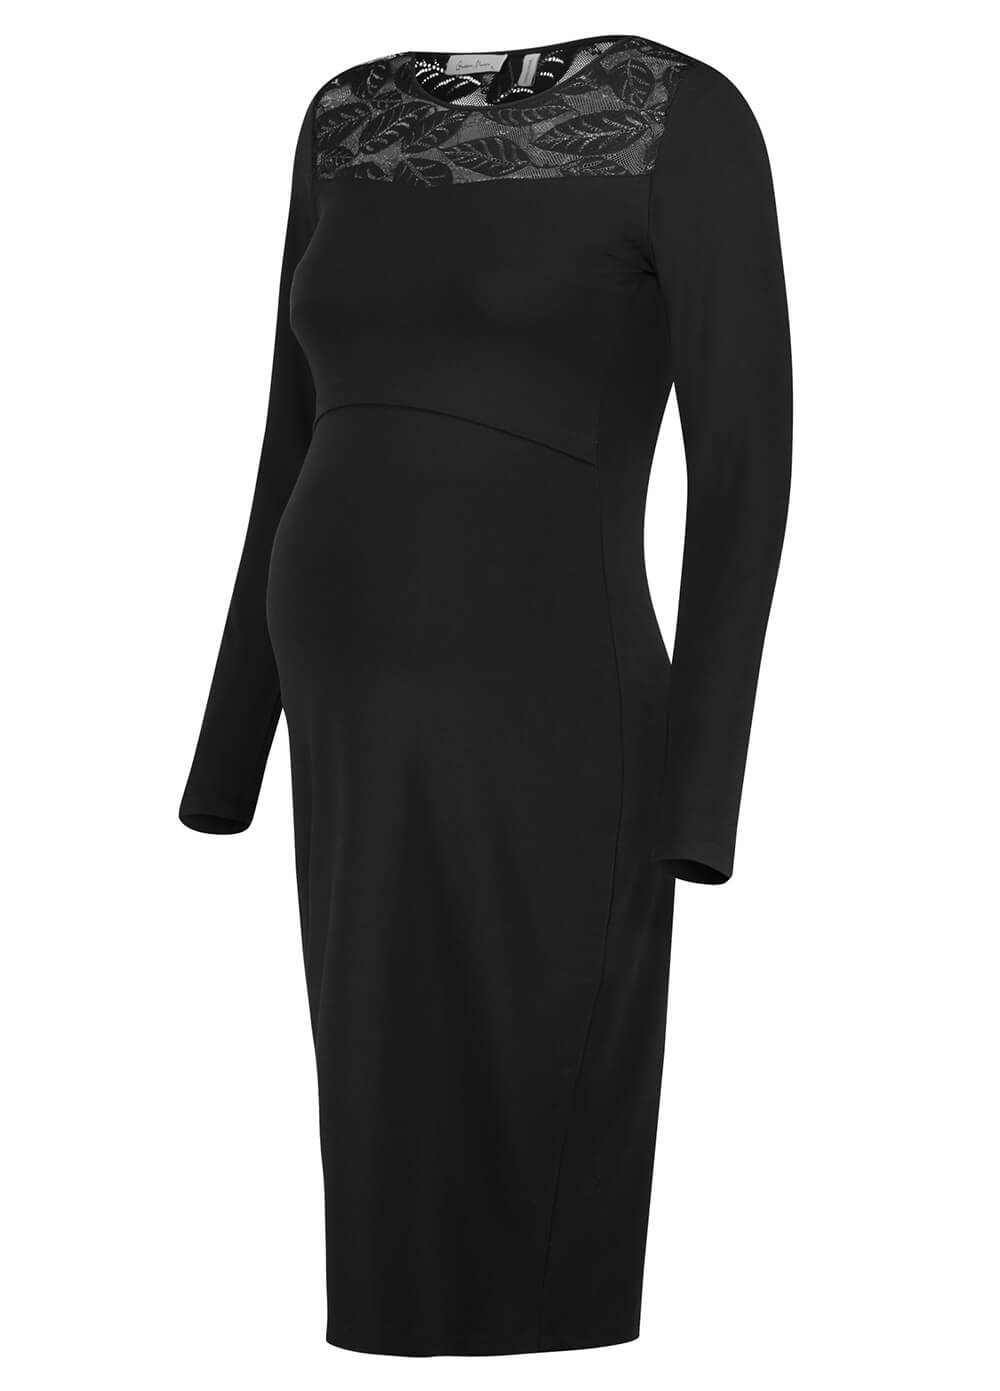 Queen mum - Lace Maternity Nursing Evening Dress | Queen Bee